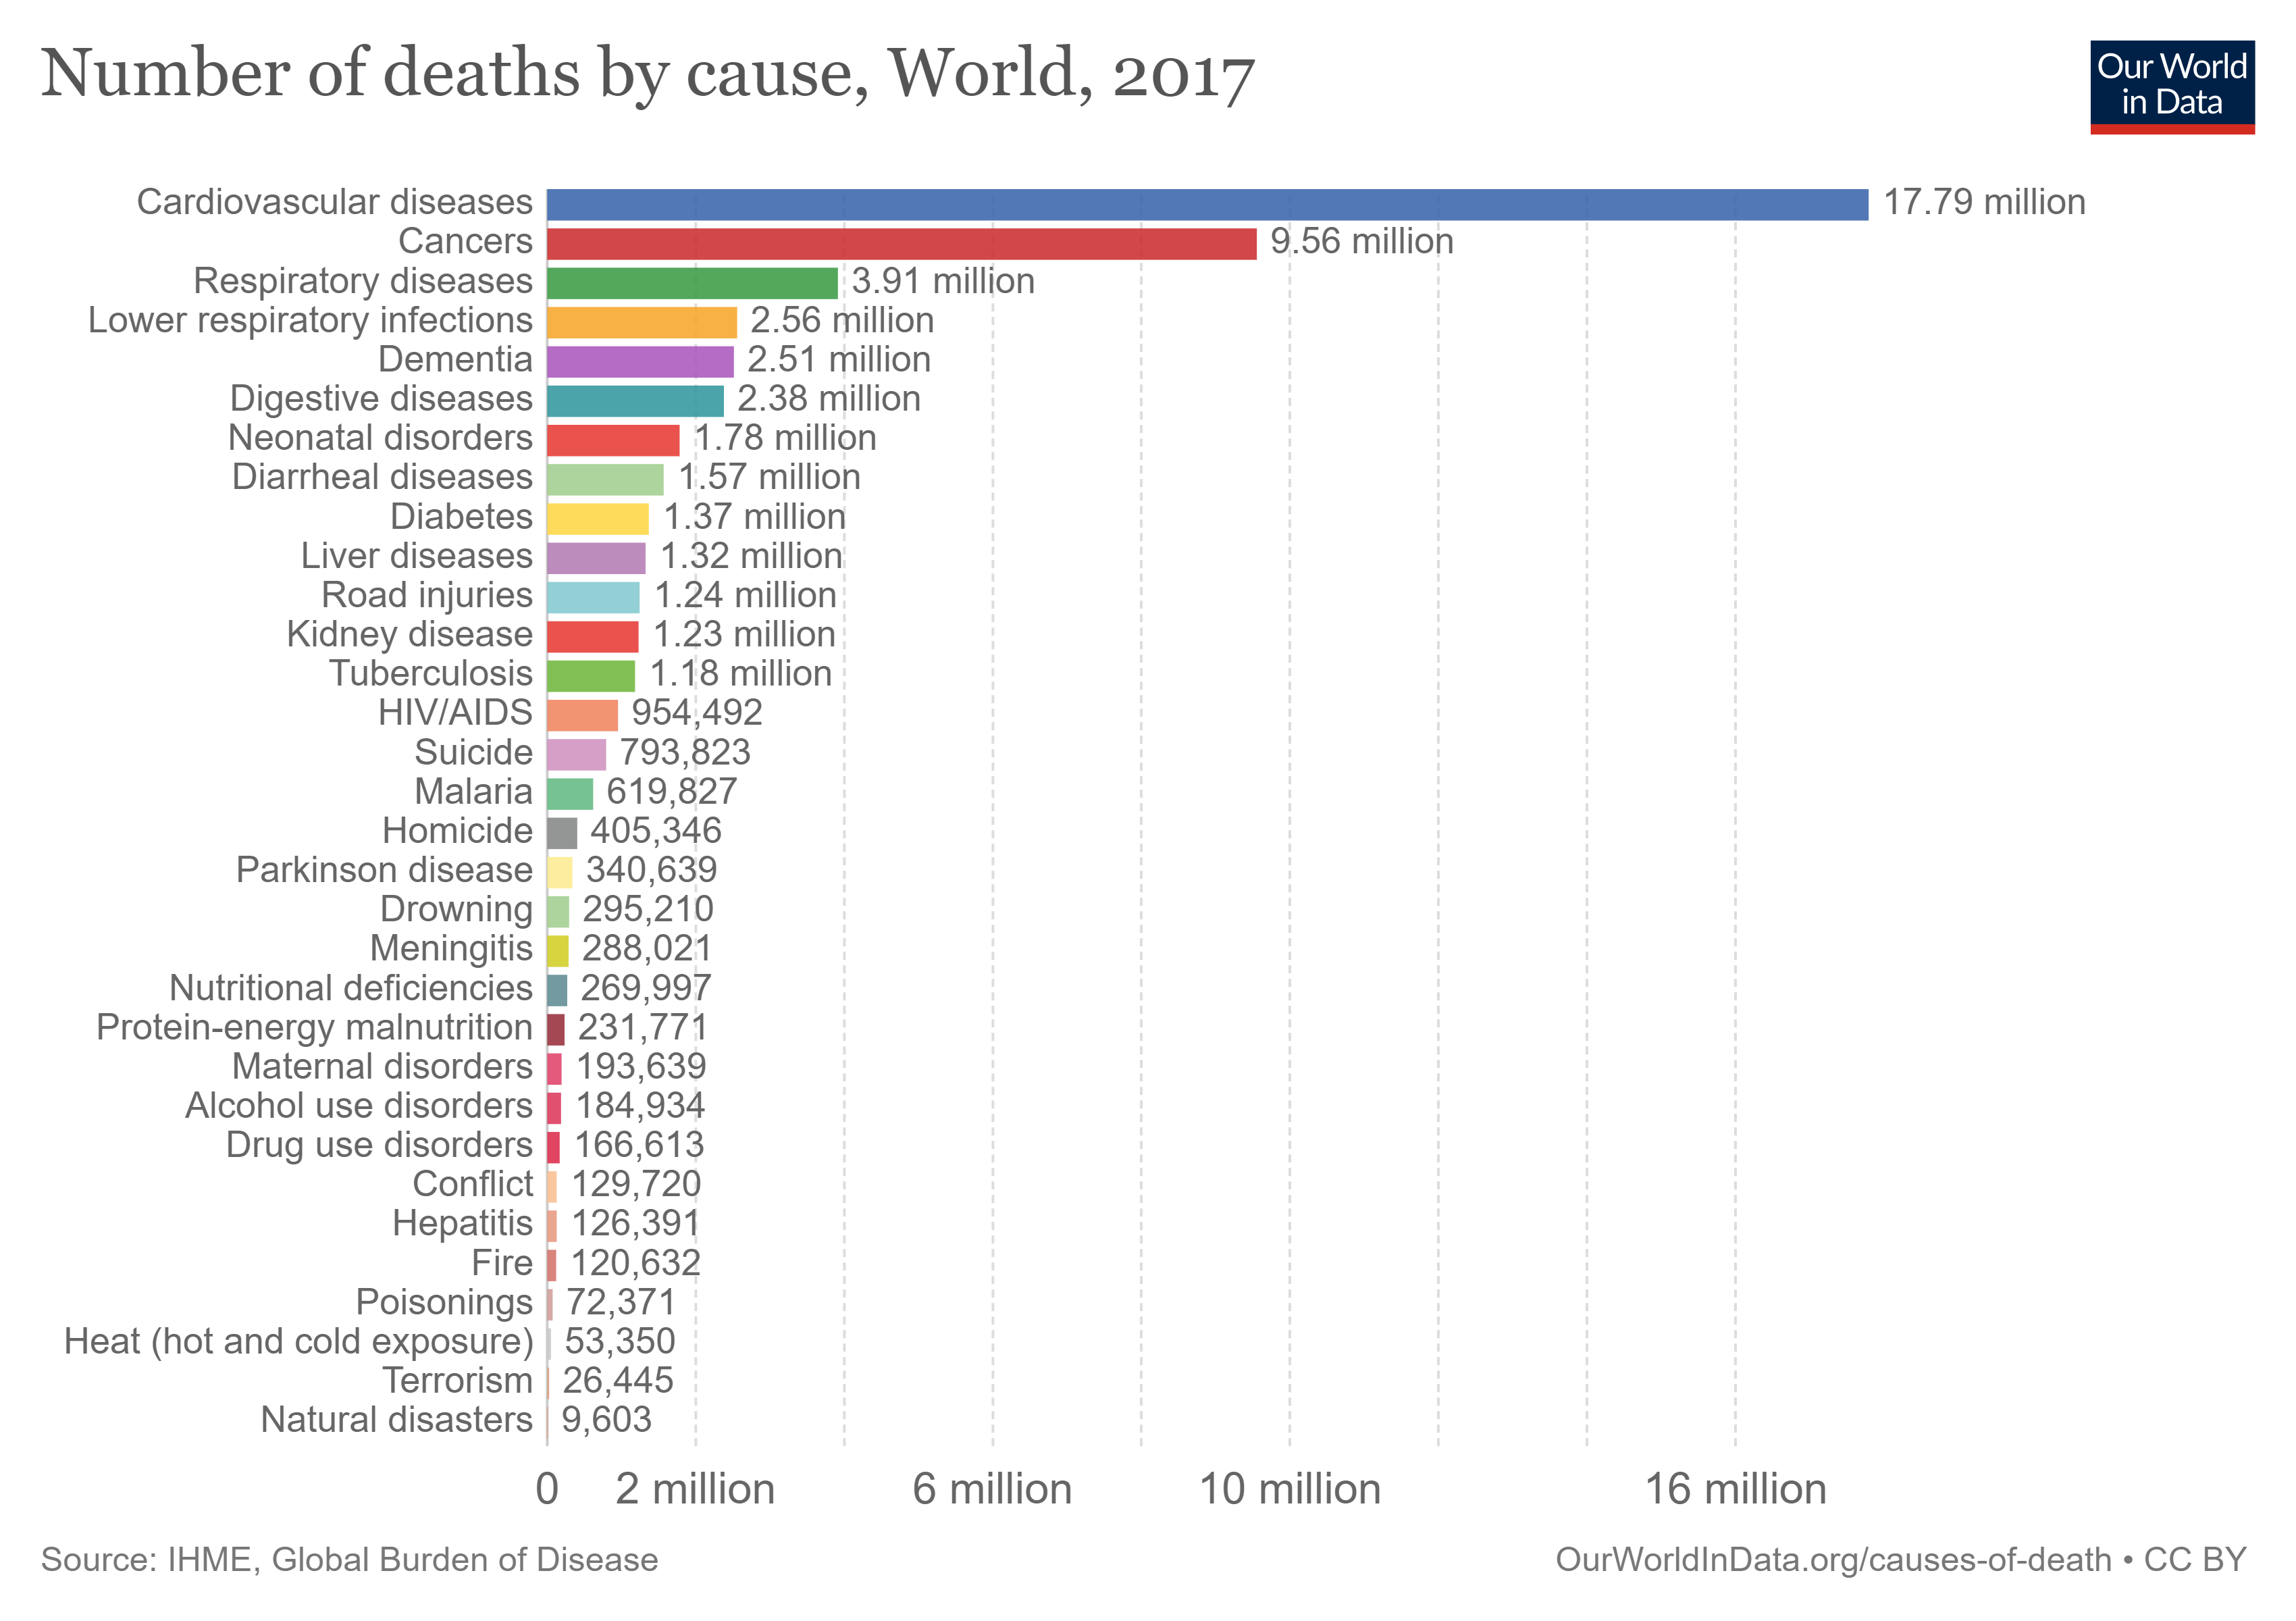 Number of deaths caused by cancer worldwide